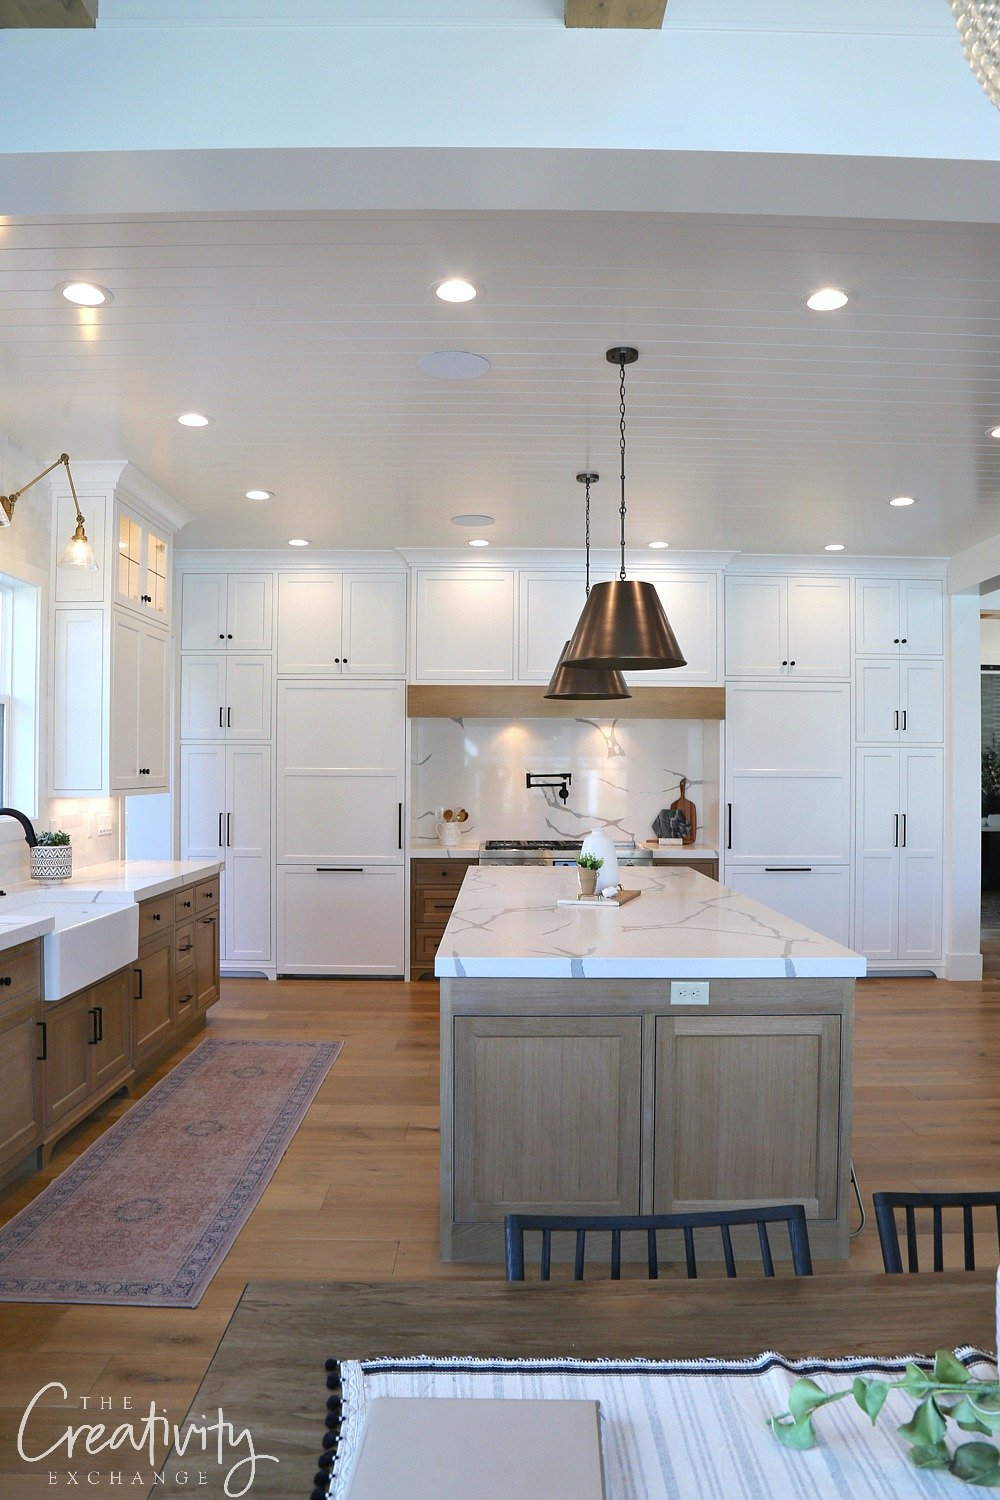 Modern Farmhouse Kitchen with White Cabinets